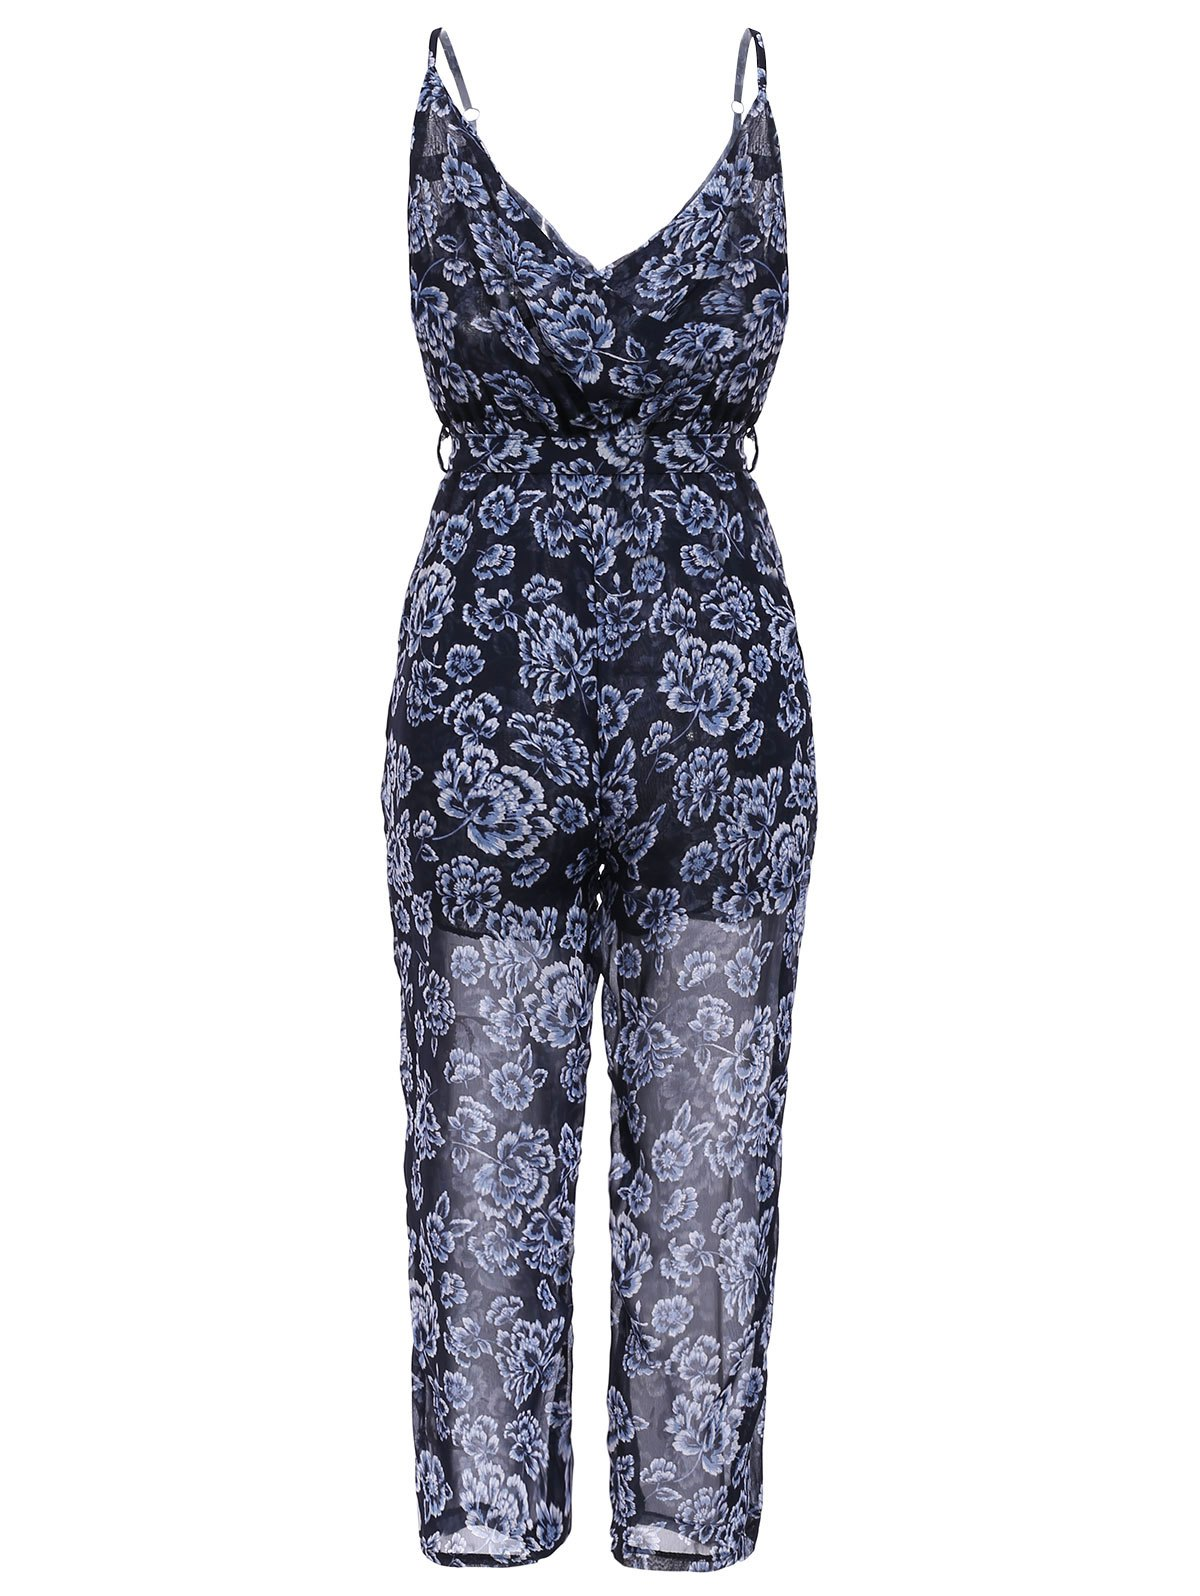 Trendy Floral Print Sleeveless Jumpsuit For Women